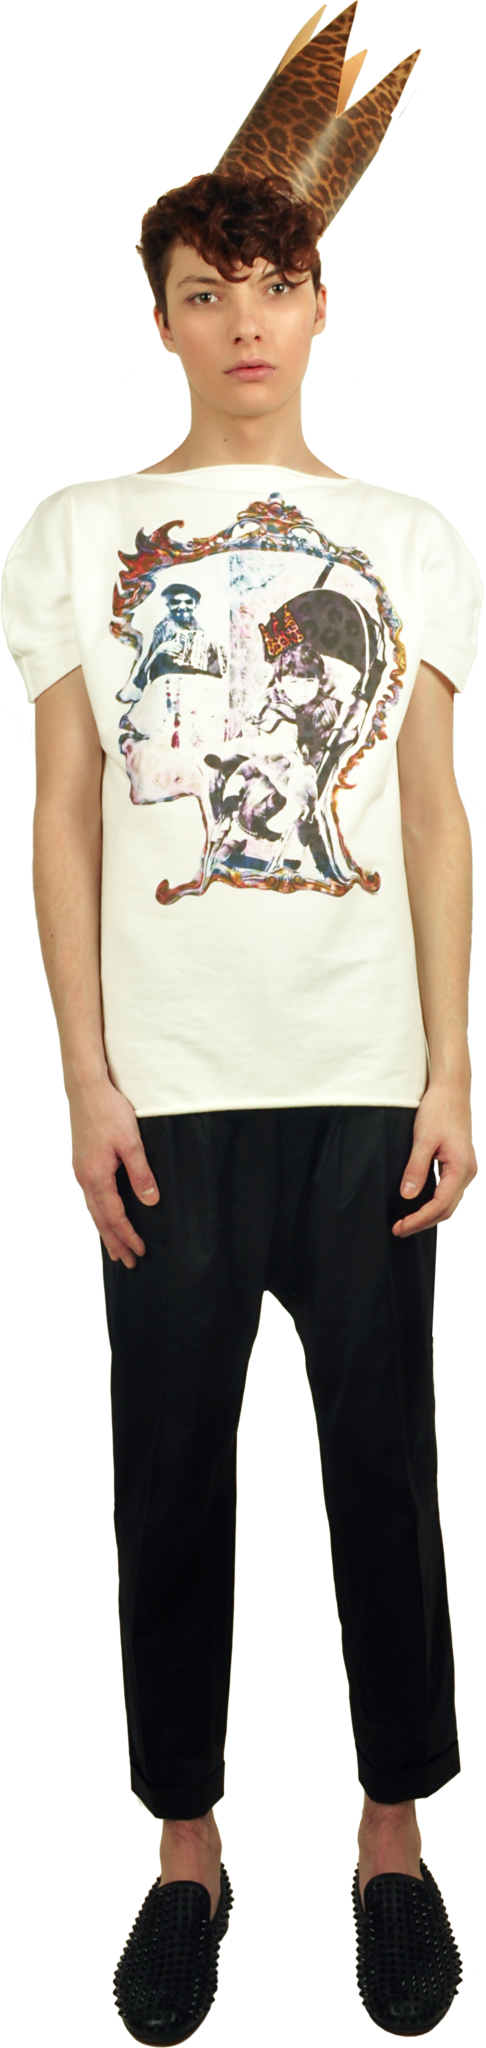 "Princely T-Shirt ""The Little Prince"" in Milk"